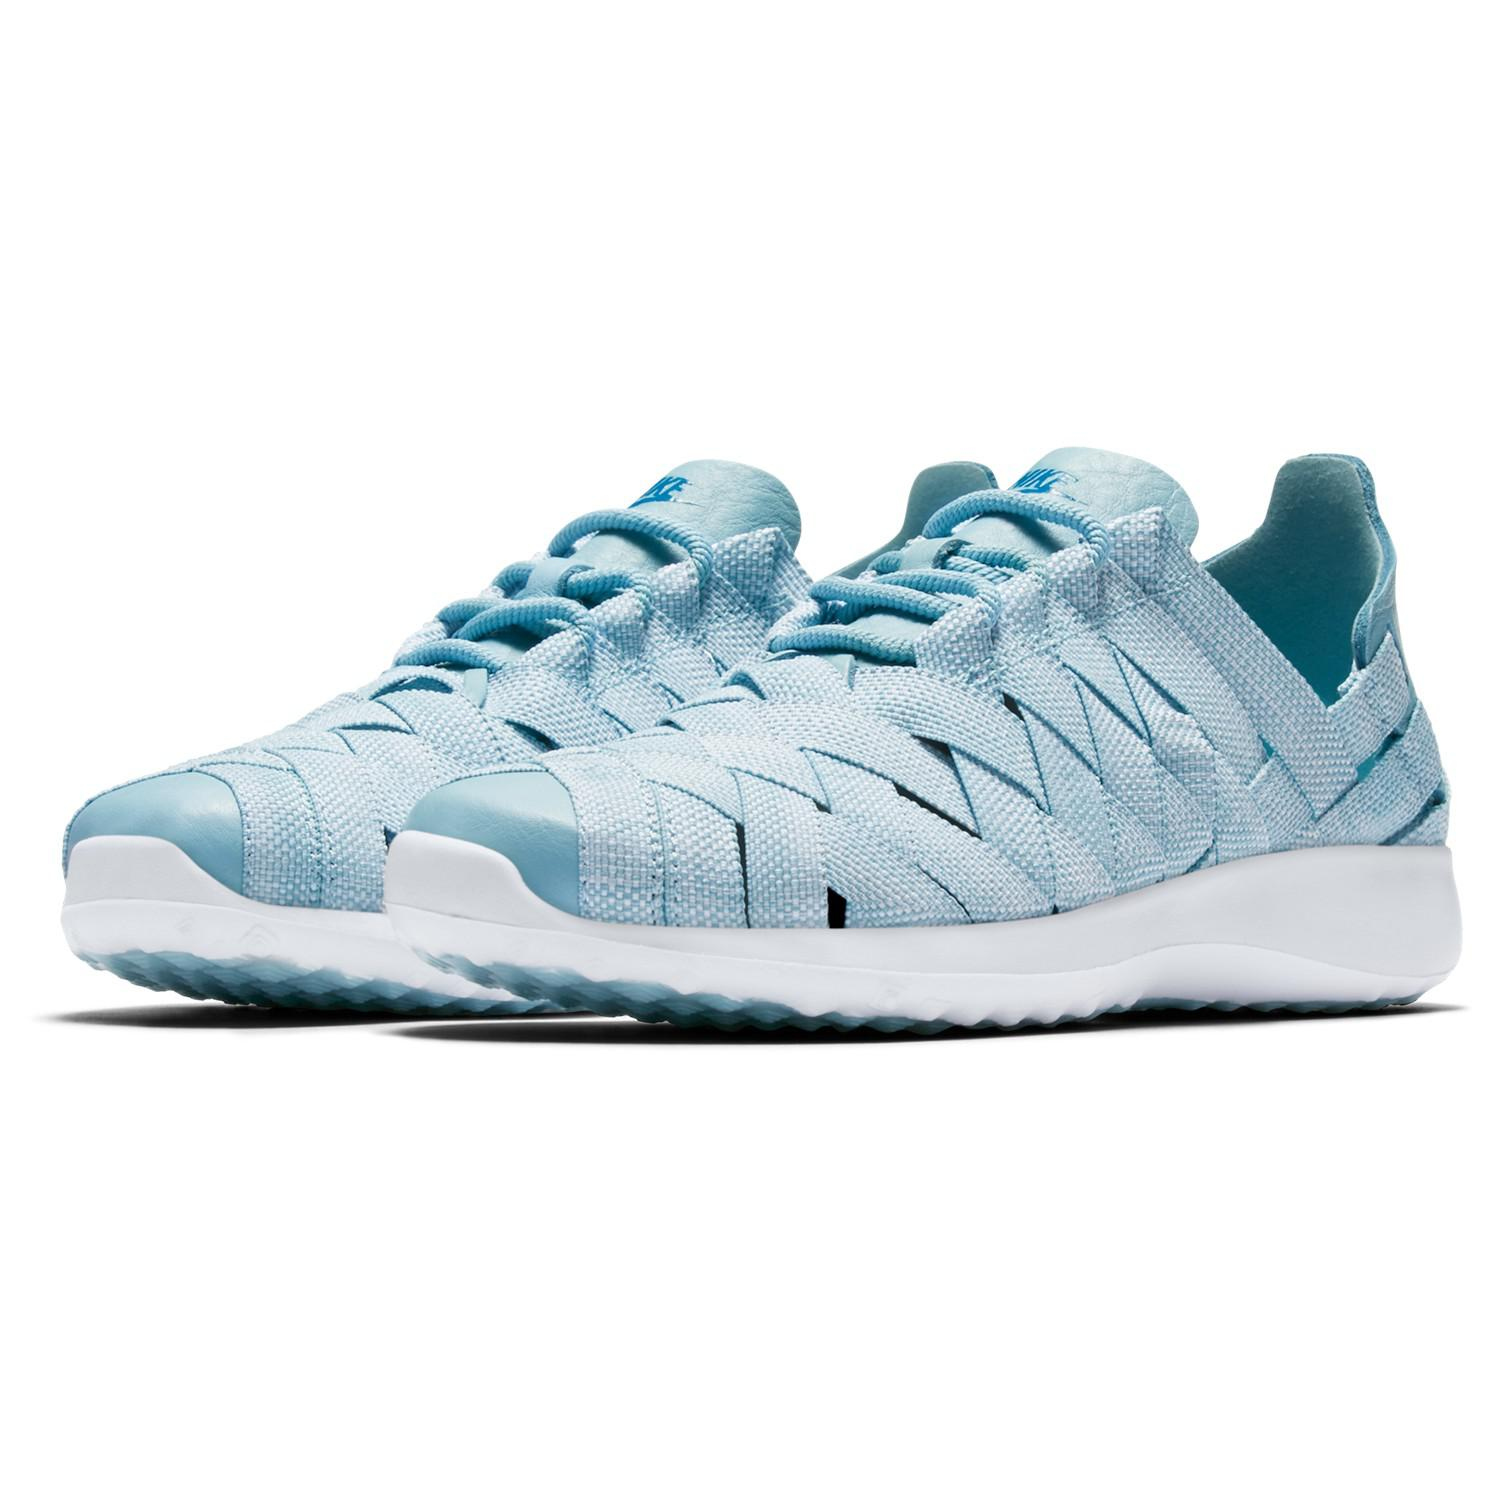 788ea328698 Nike Juvenate Woven Premium Women s Trainers in Blue - Lyst